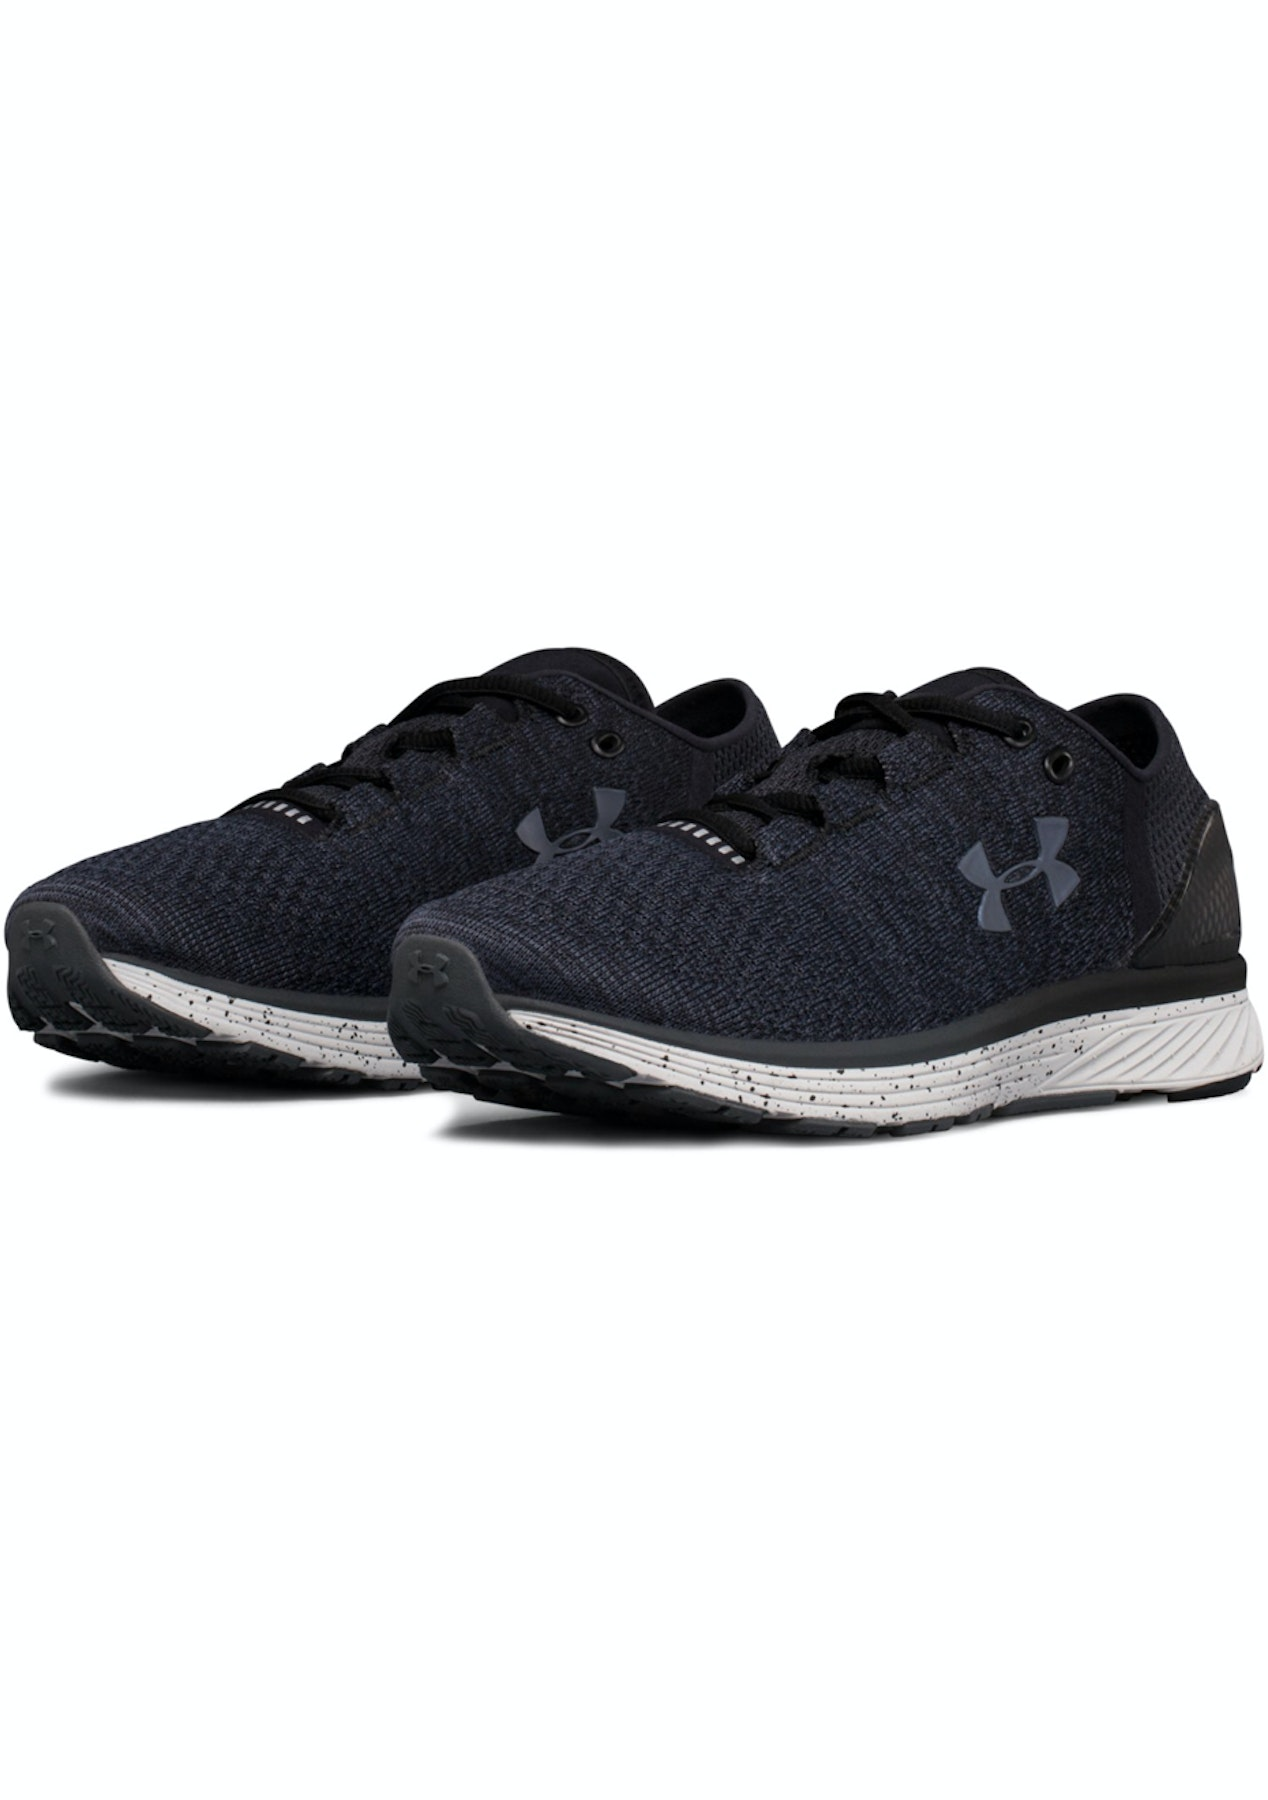 finest selection 3fb6d d1552 Under Armour - 1298664 Womens Charged Bandit 3 - Black